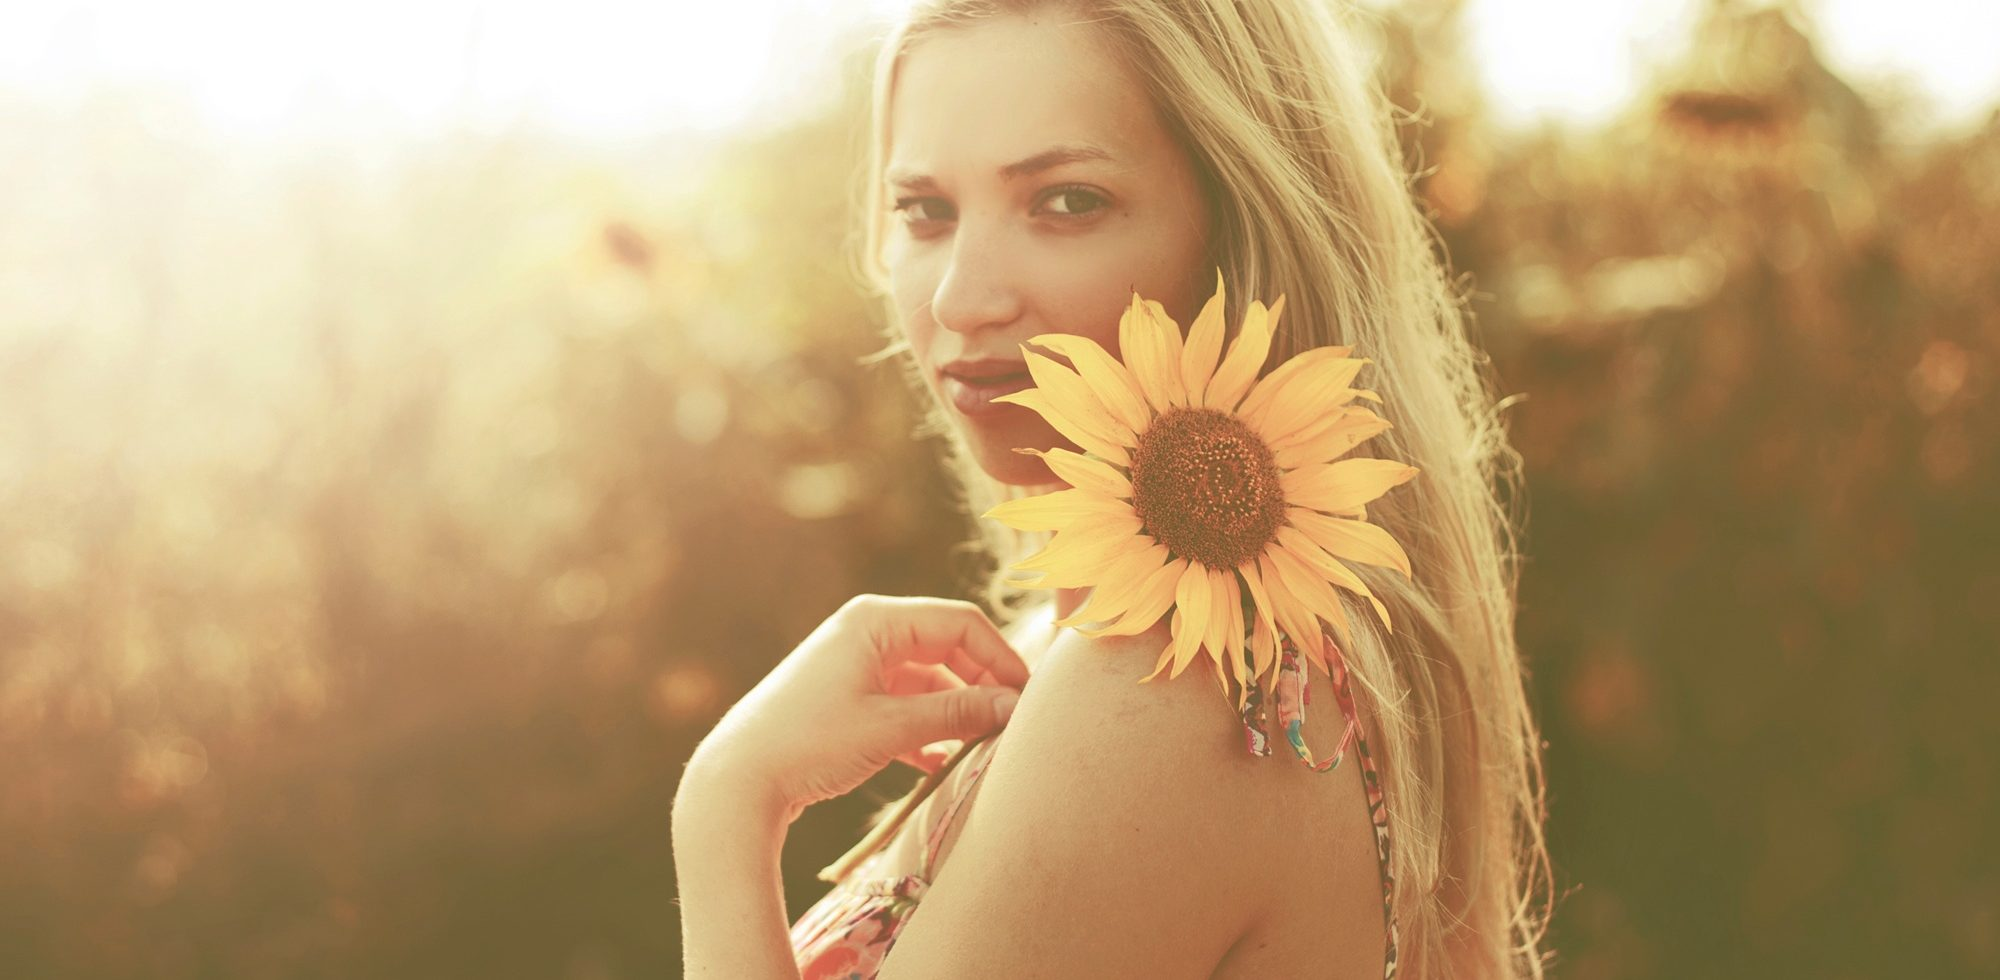 When the Sunflowers Face the Sun by Olivia Punch